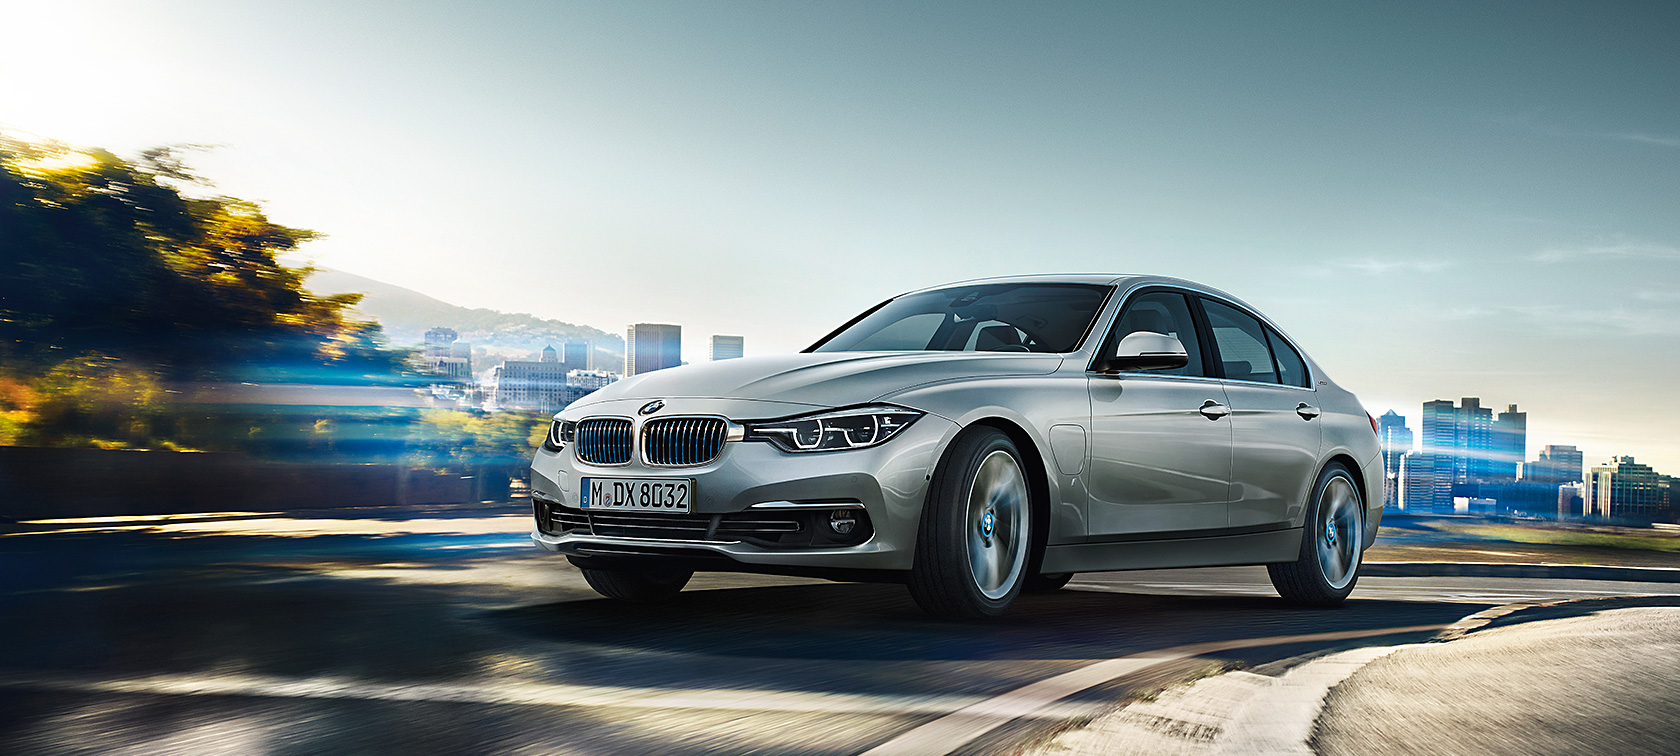 The BMW 330e iPerformance Sedan